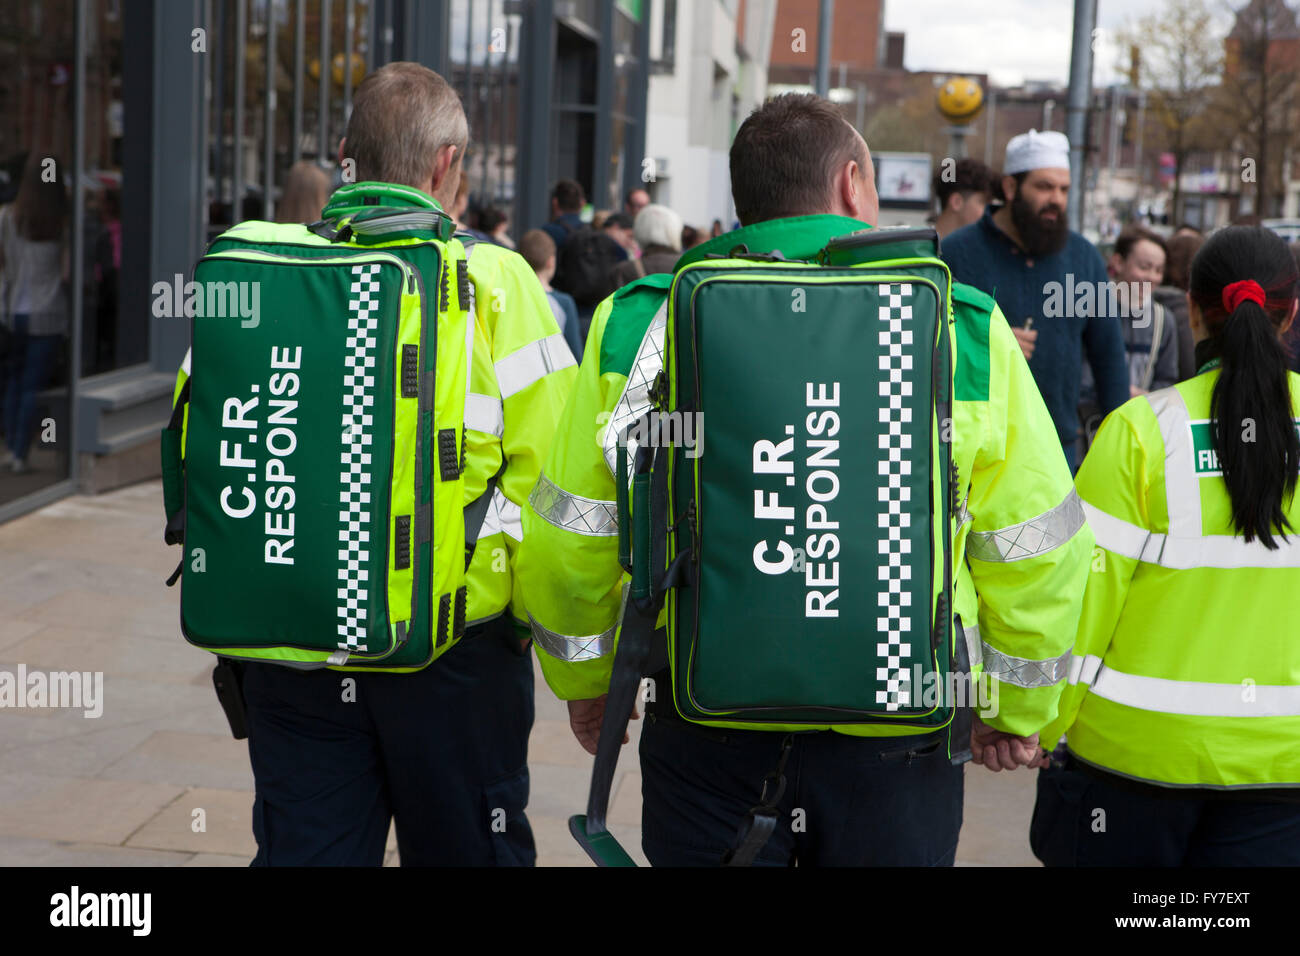 a ambulance medic paramedic emergency urgent healthcare first aid cpr response medical ambulances siren sirens ems Stock Photo